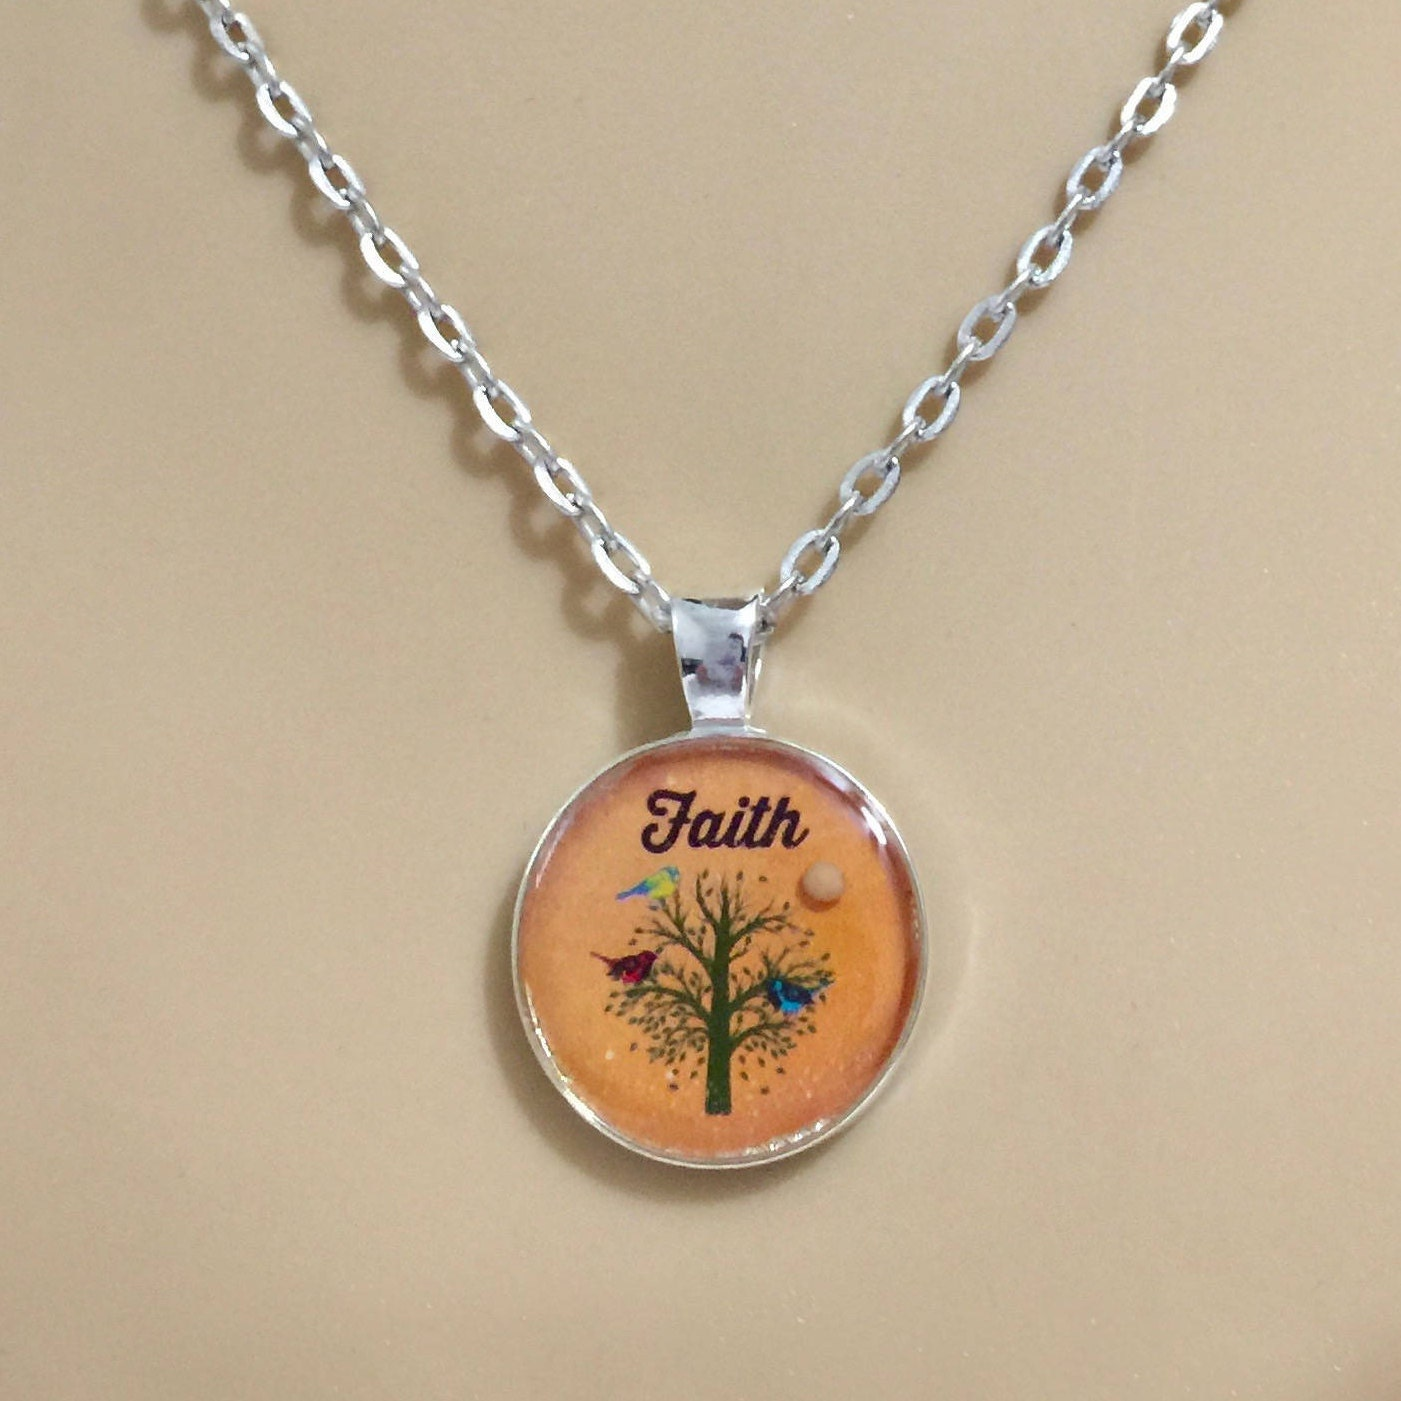 Christian jewelry orange mustard seed necklace faith jewelry gift christian jewelry orange mustard seed necklace faith jewelry gift for her tree of life necklace silver and orange link chain necklace aloadofball Choice Image